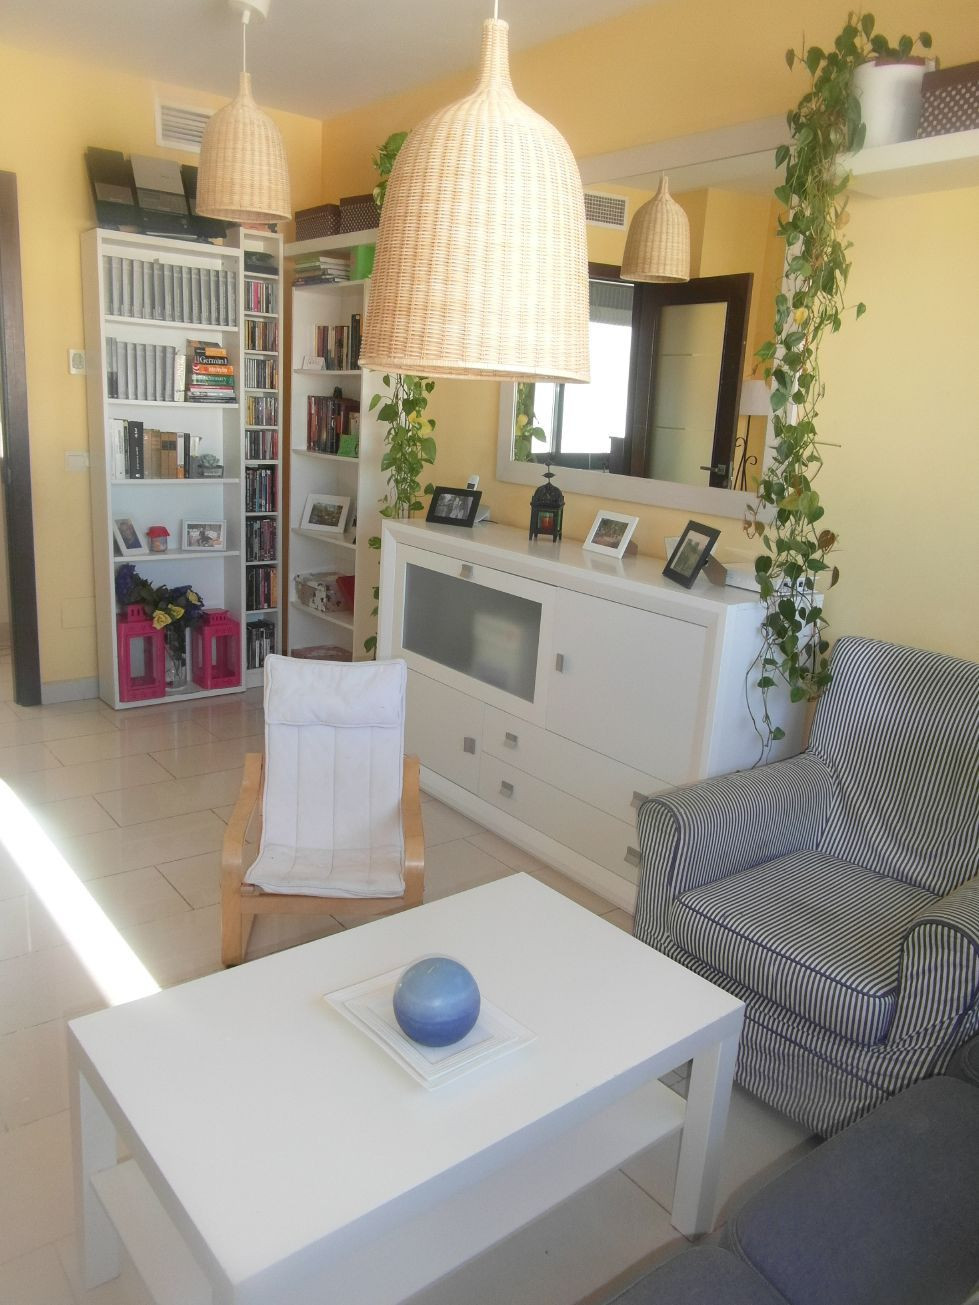 Light and bright apartment in central Estepona